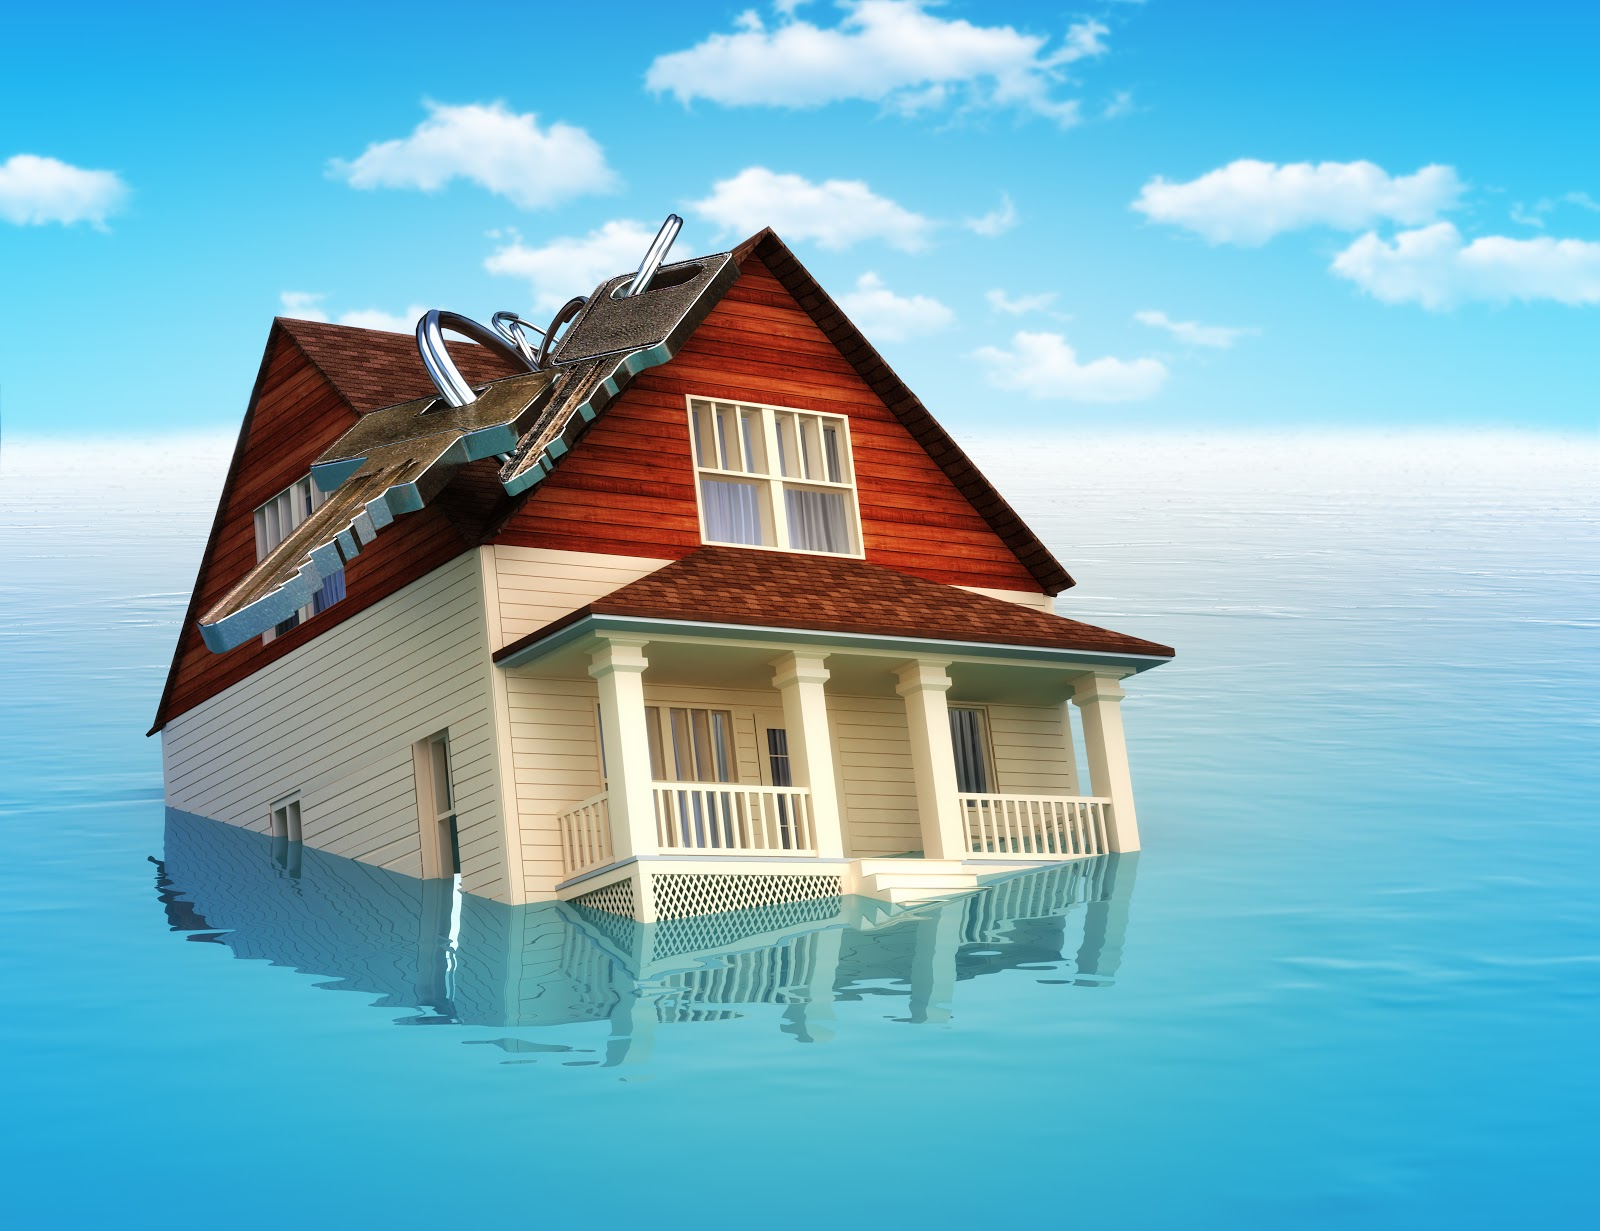 water damage, remodeling, restoration, remodeling, contracting, renovating, flood damage repair, emergenccy insurance